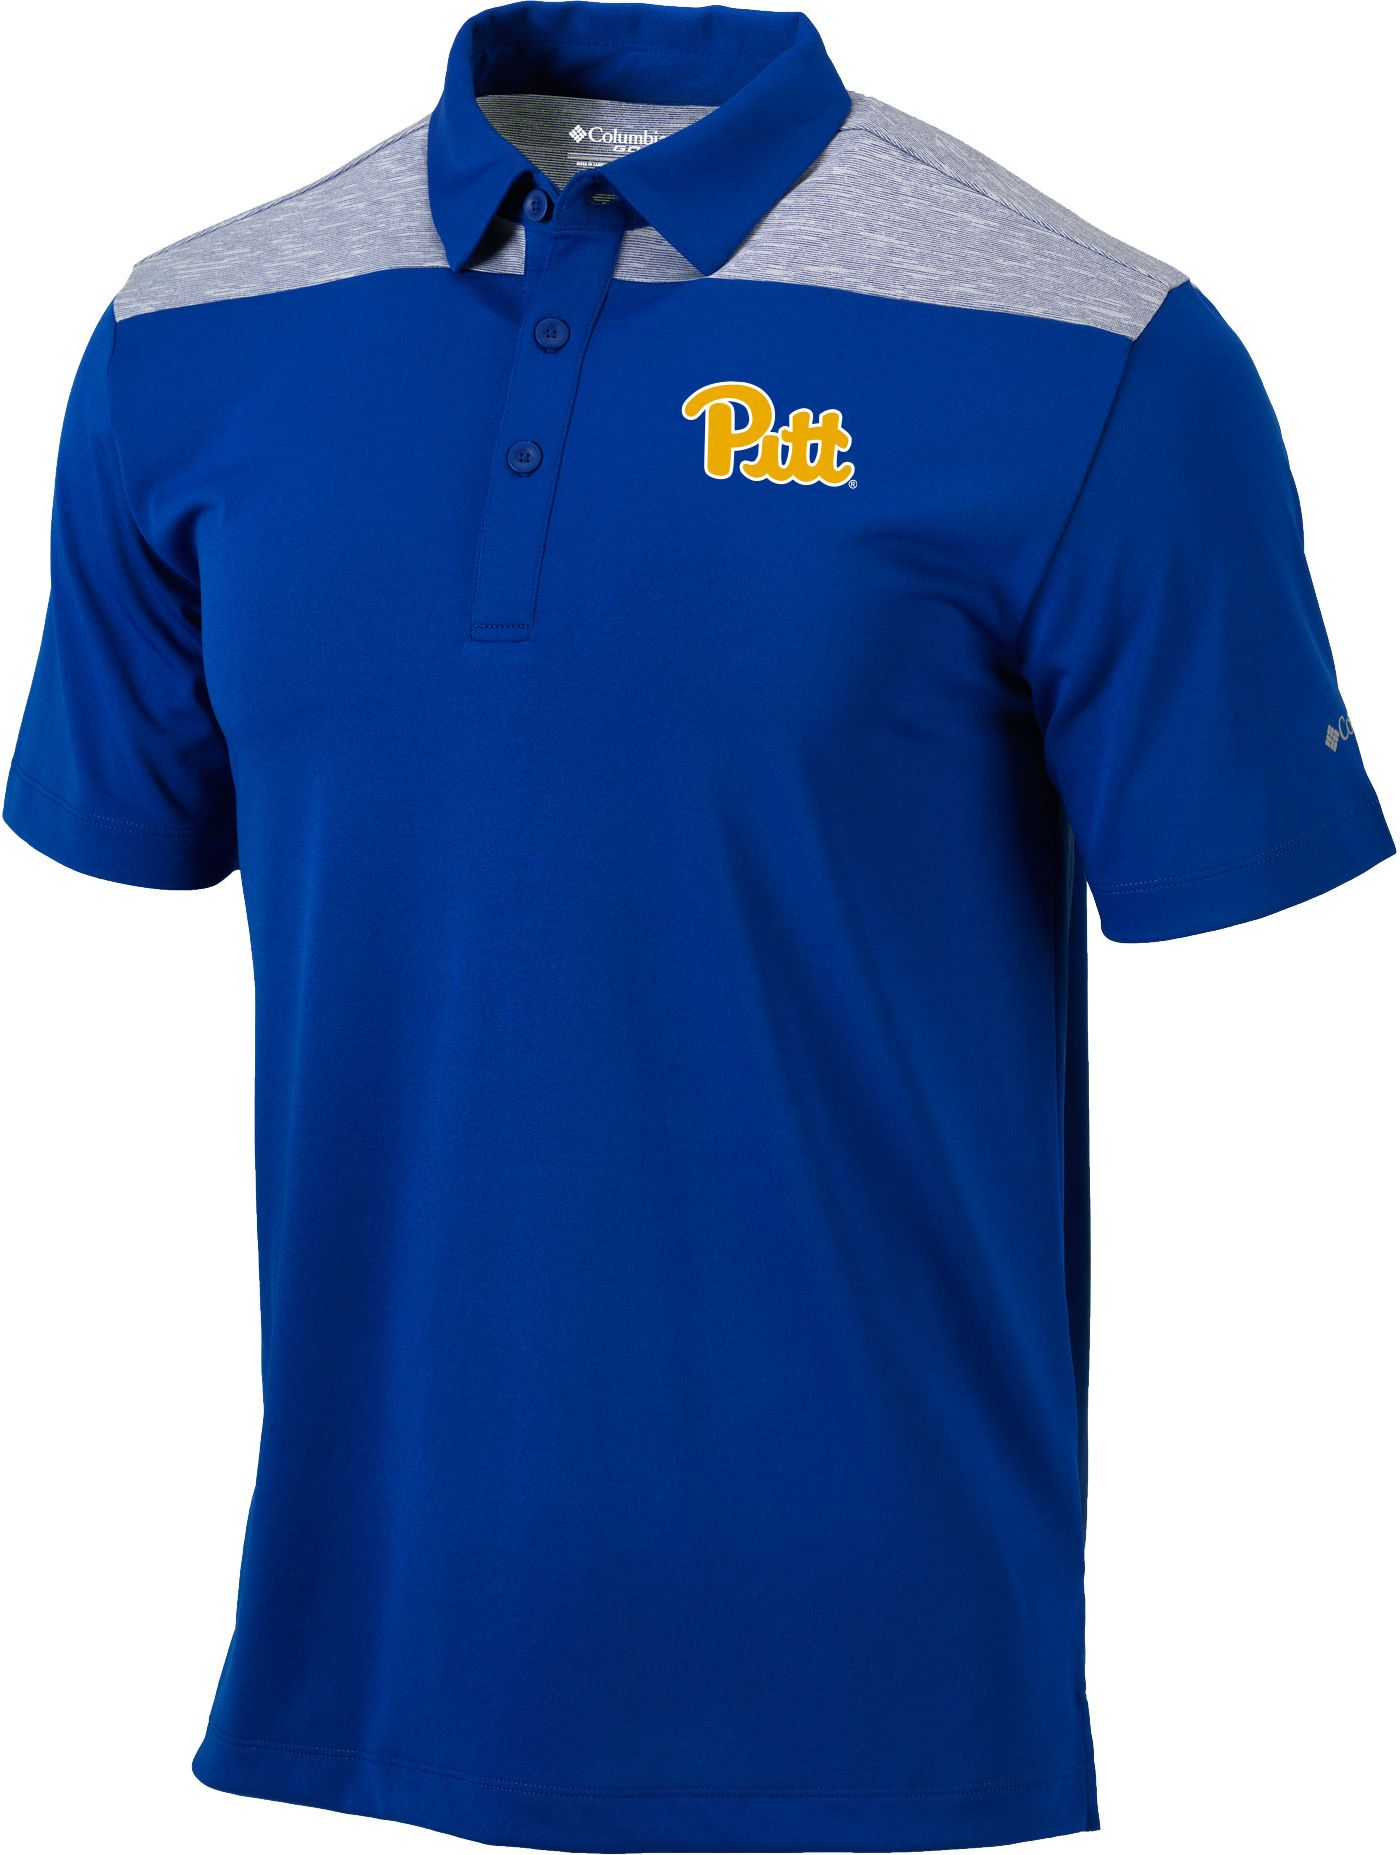 Columbia Men's Pitt Panthers Blue Utility Performance Polo